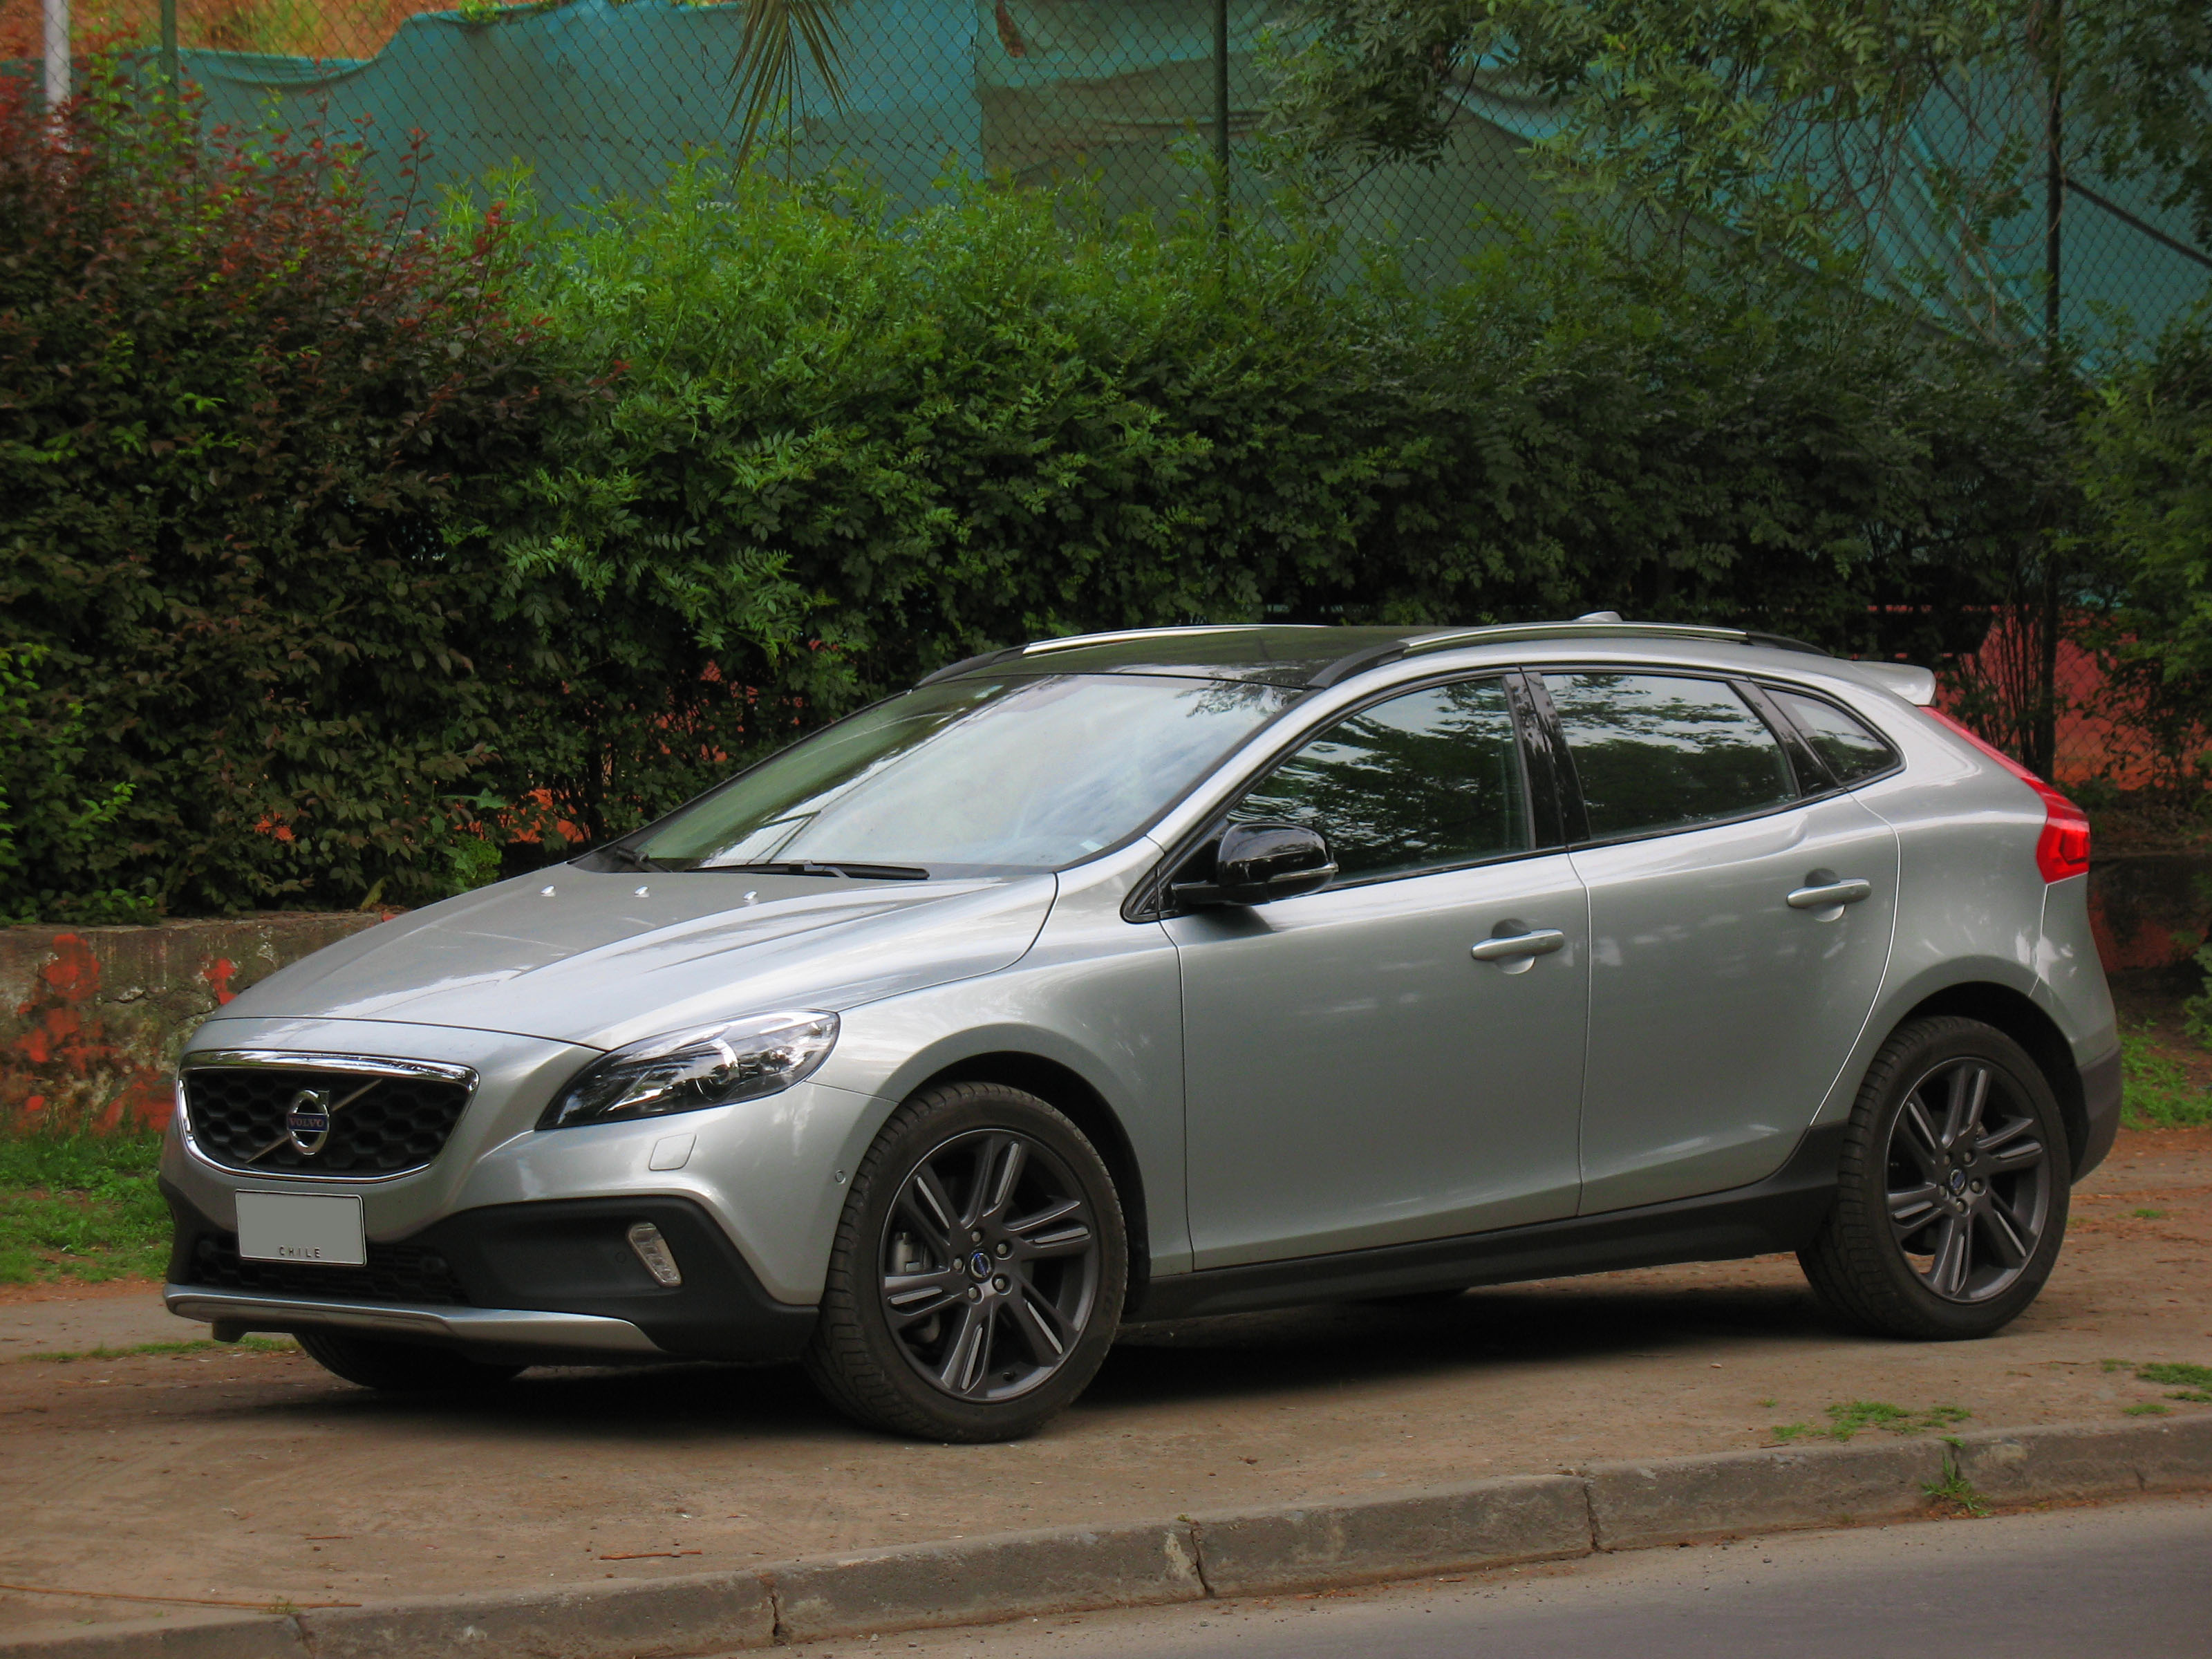 file volvo v40 t5 cross country awd 2013 14913538207 jpg wikimedia commons. Black Bedroom Furniture Sets. Home Design Ideas